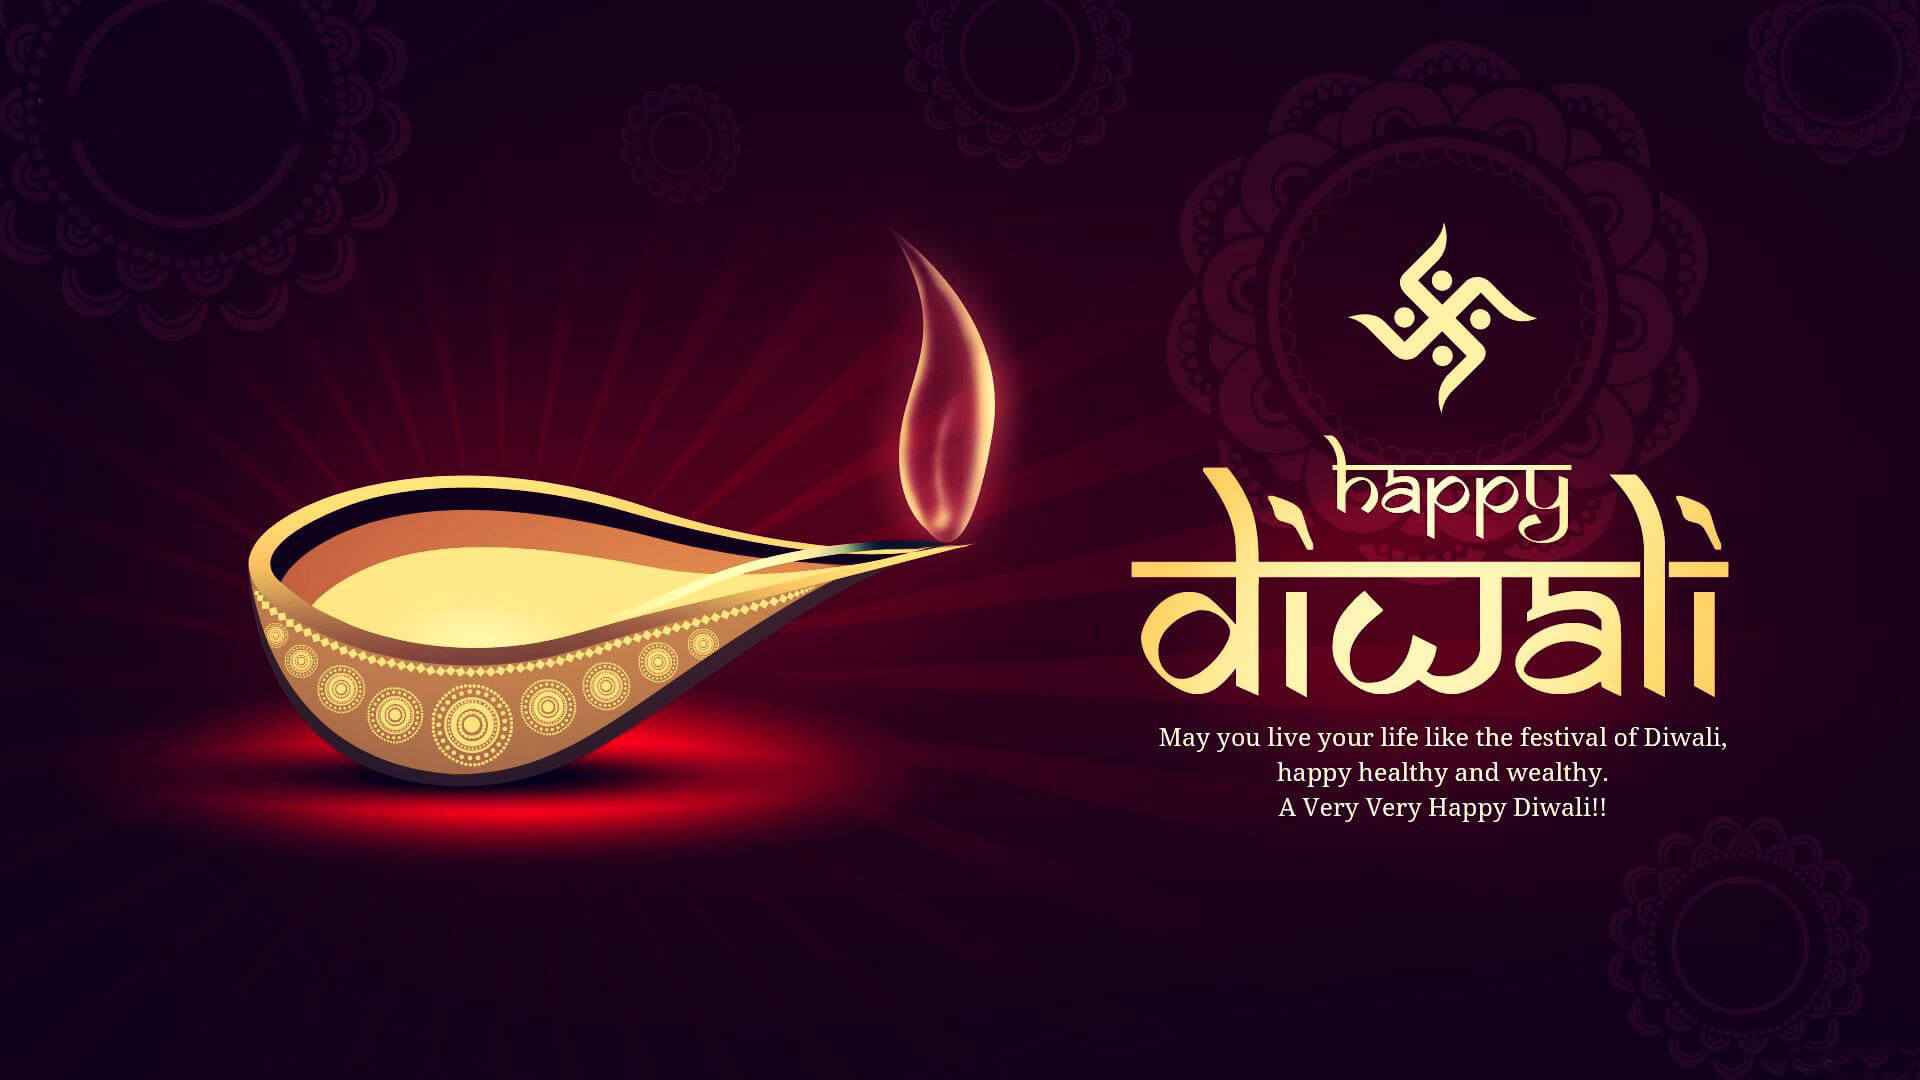 Happy Diwali 2018 Images Wishes Hd Wallpapers Messages